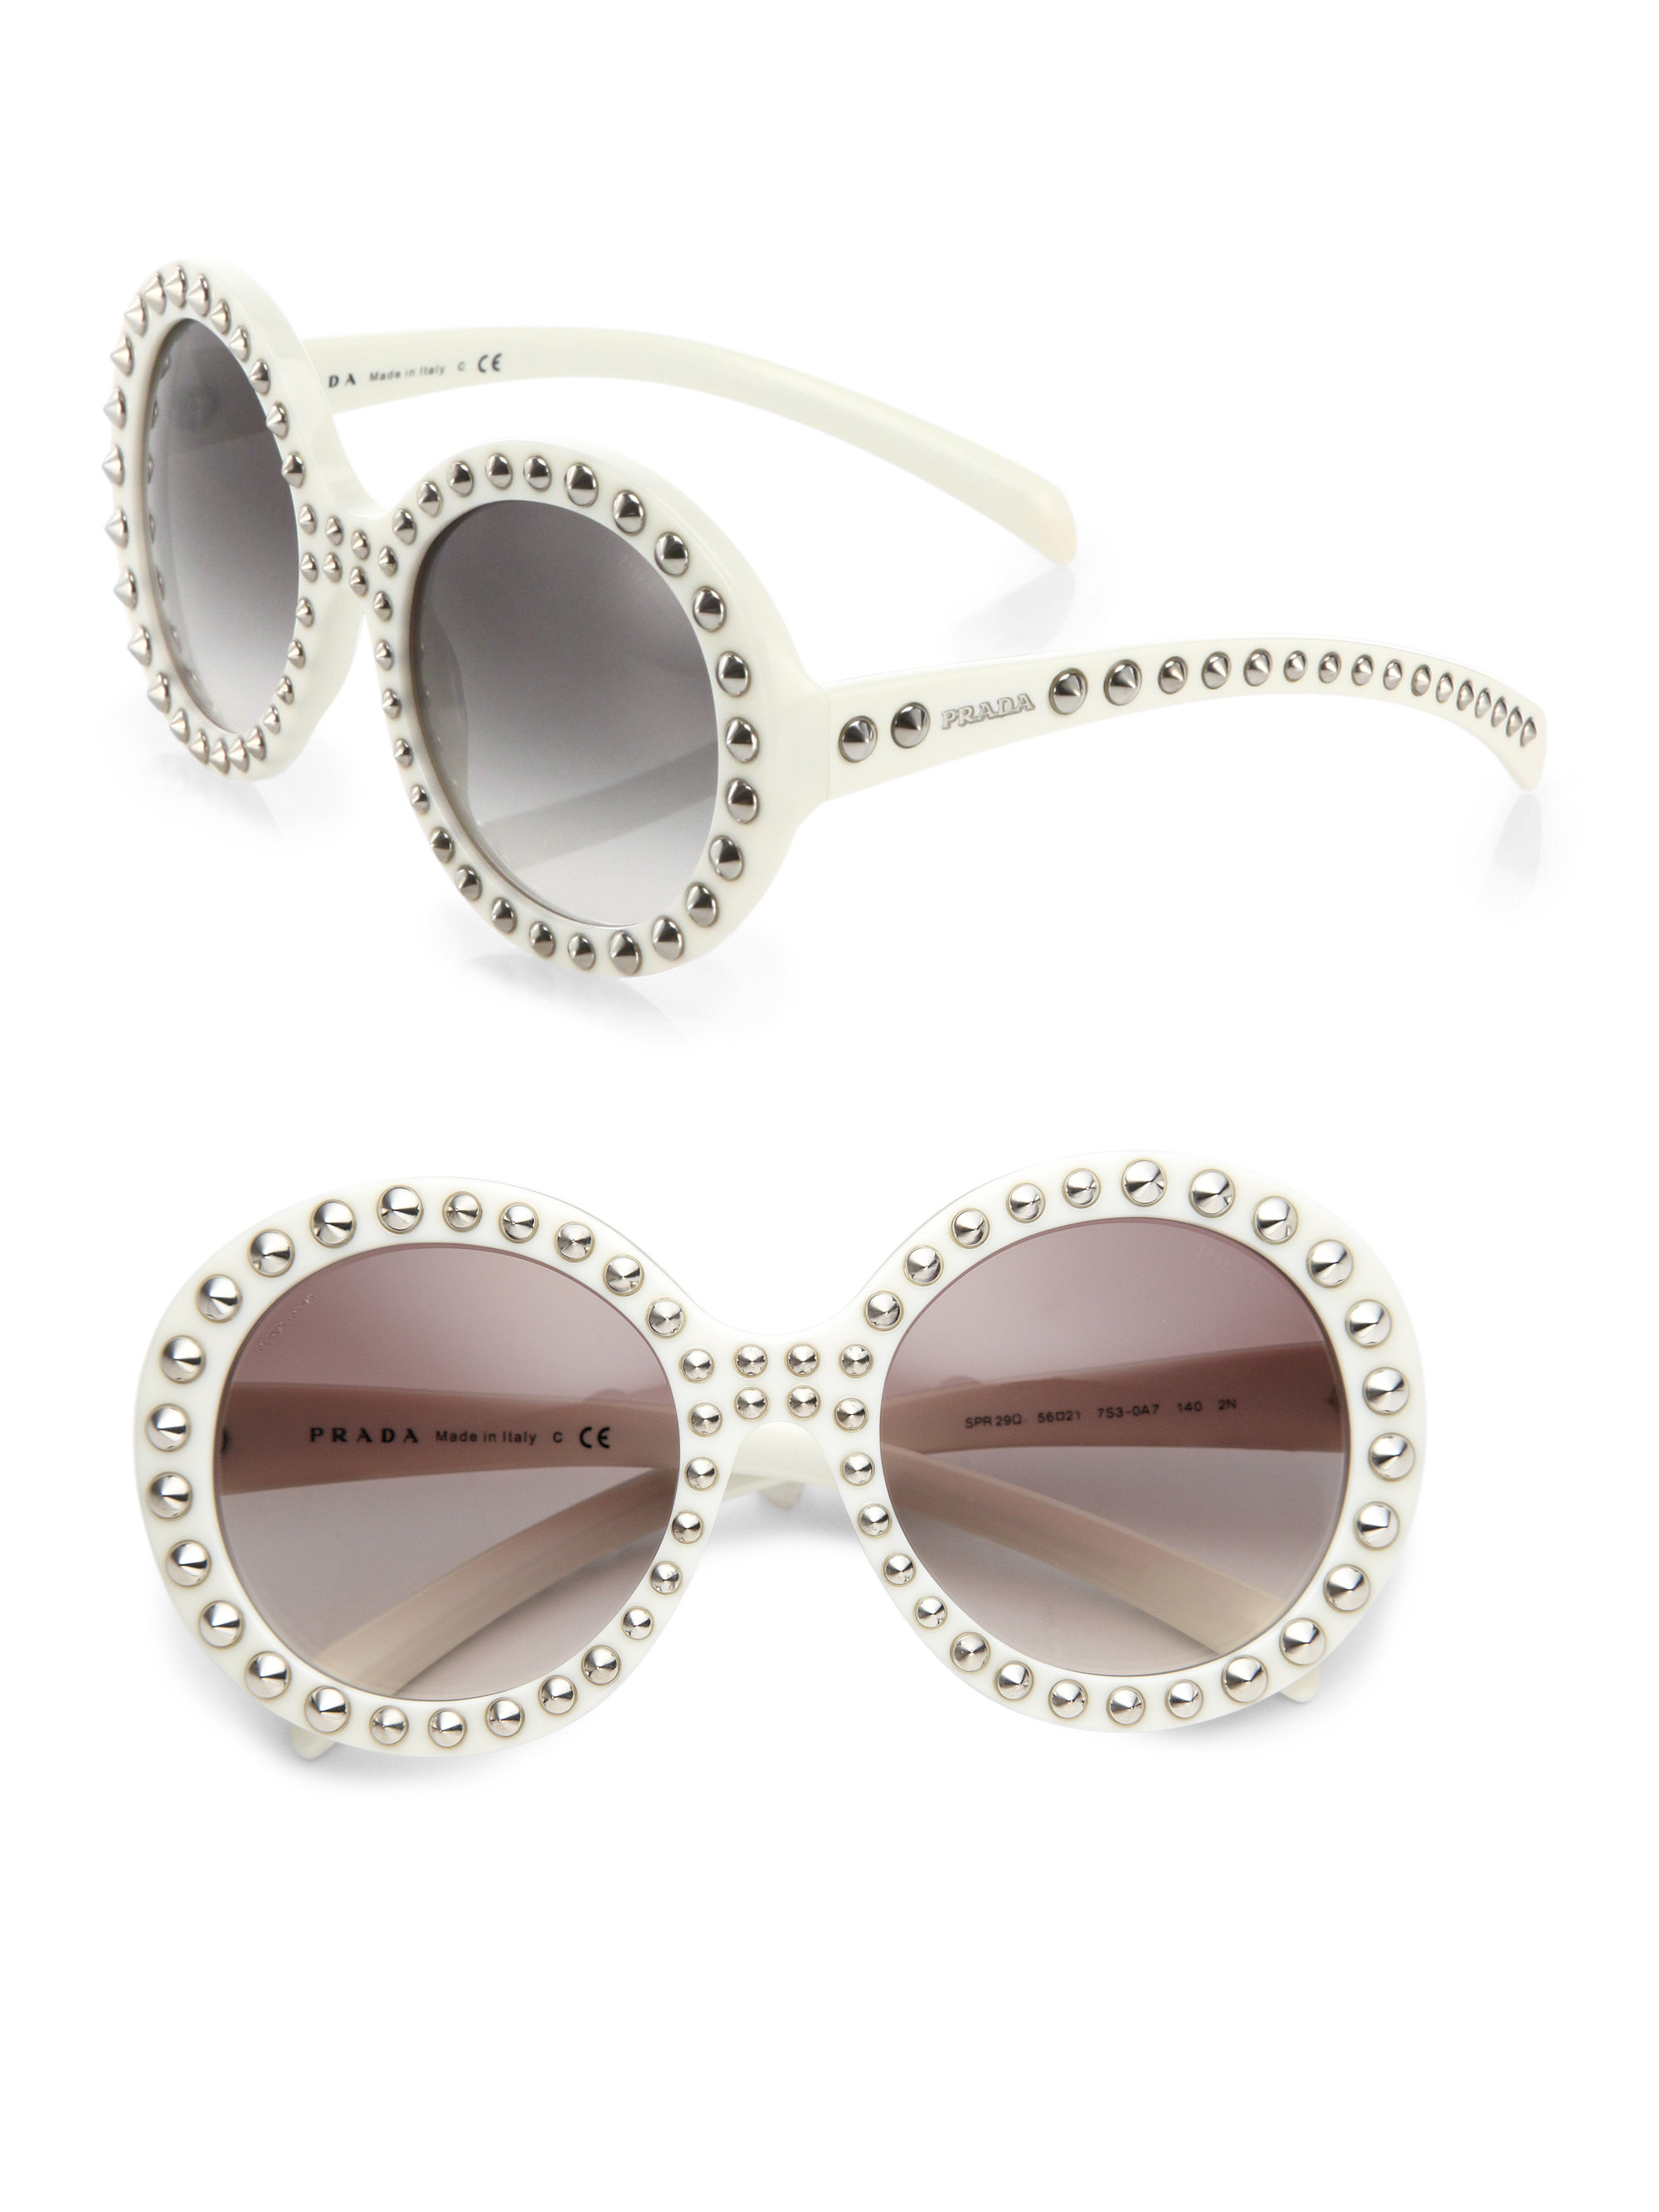 Prada Round Rimless Sunglasses | City of Kenmore, Washington